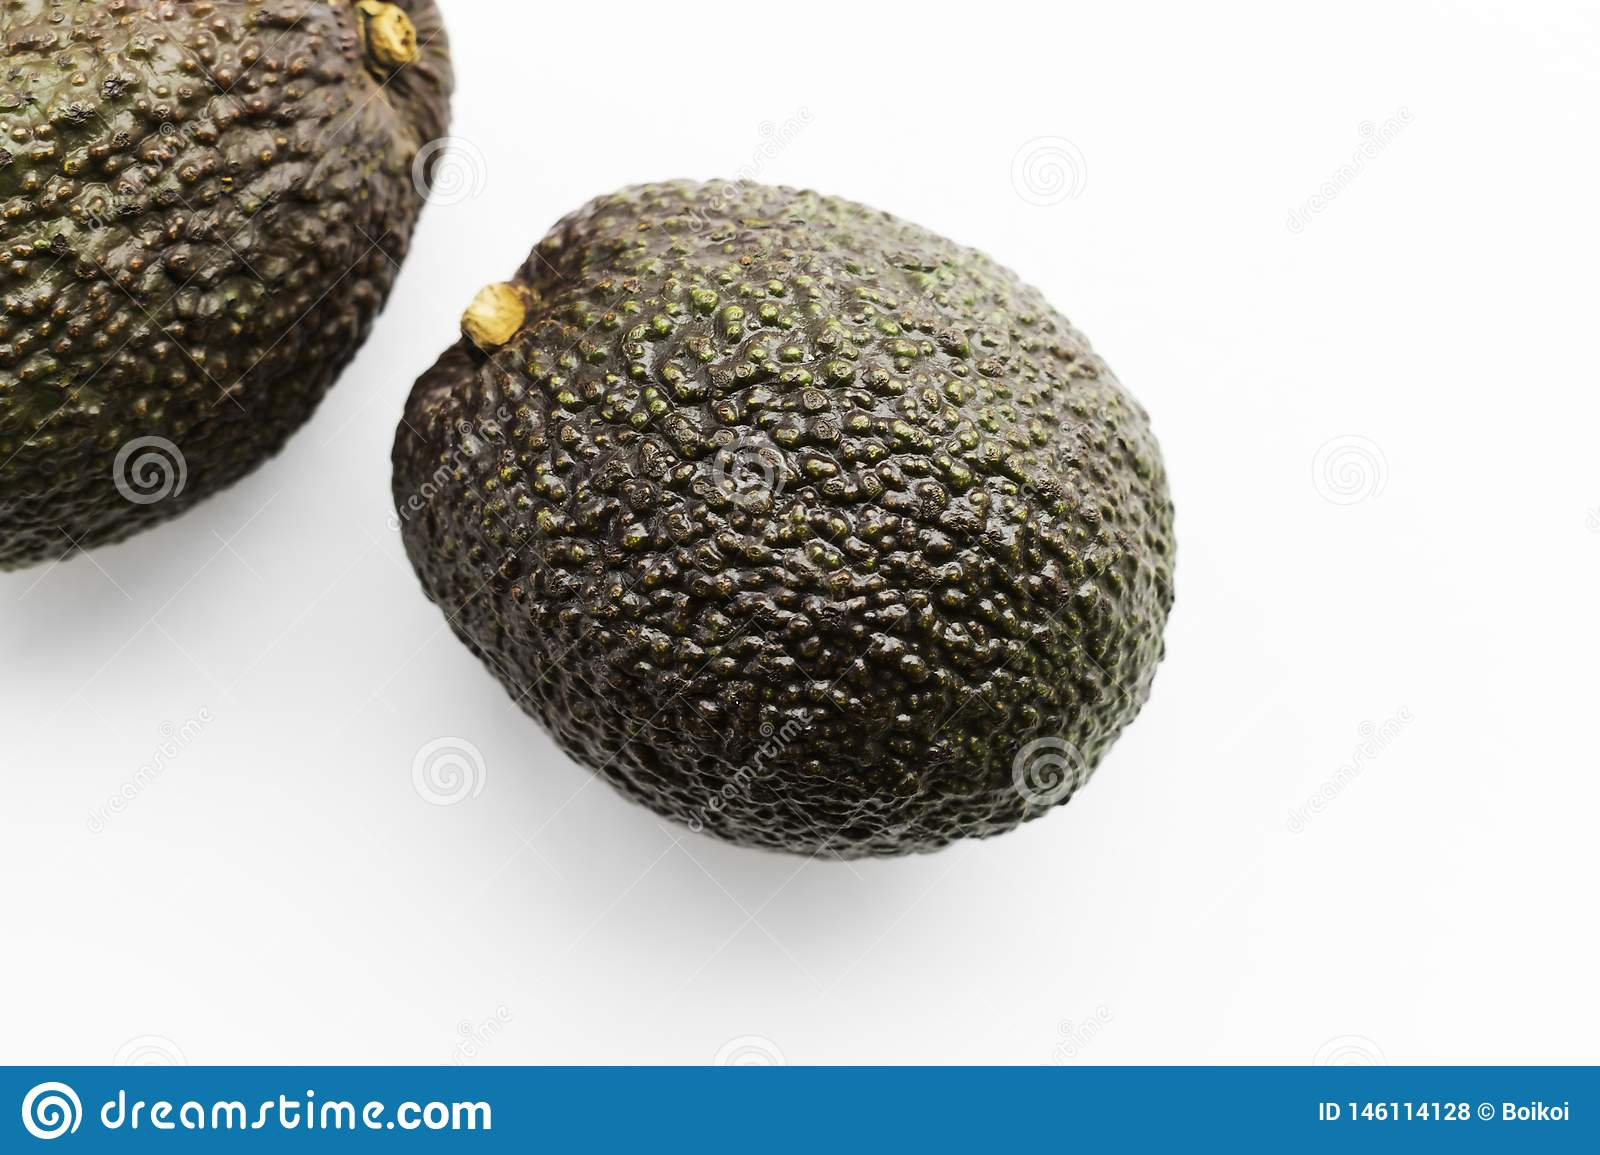 Two ripe avocados Haas on a white background